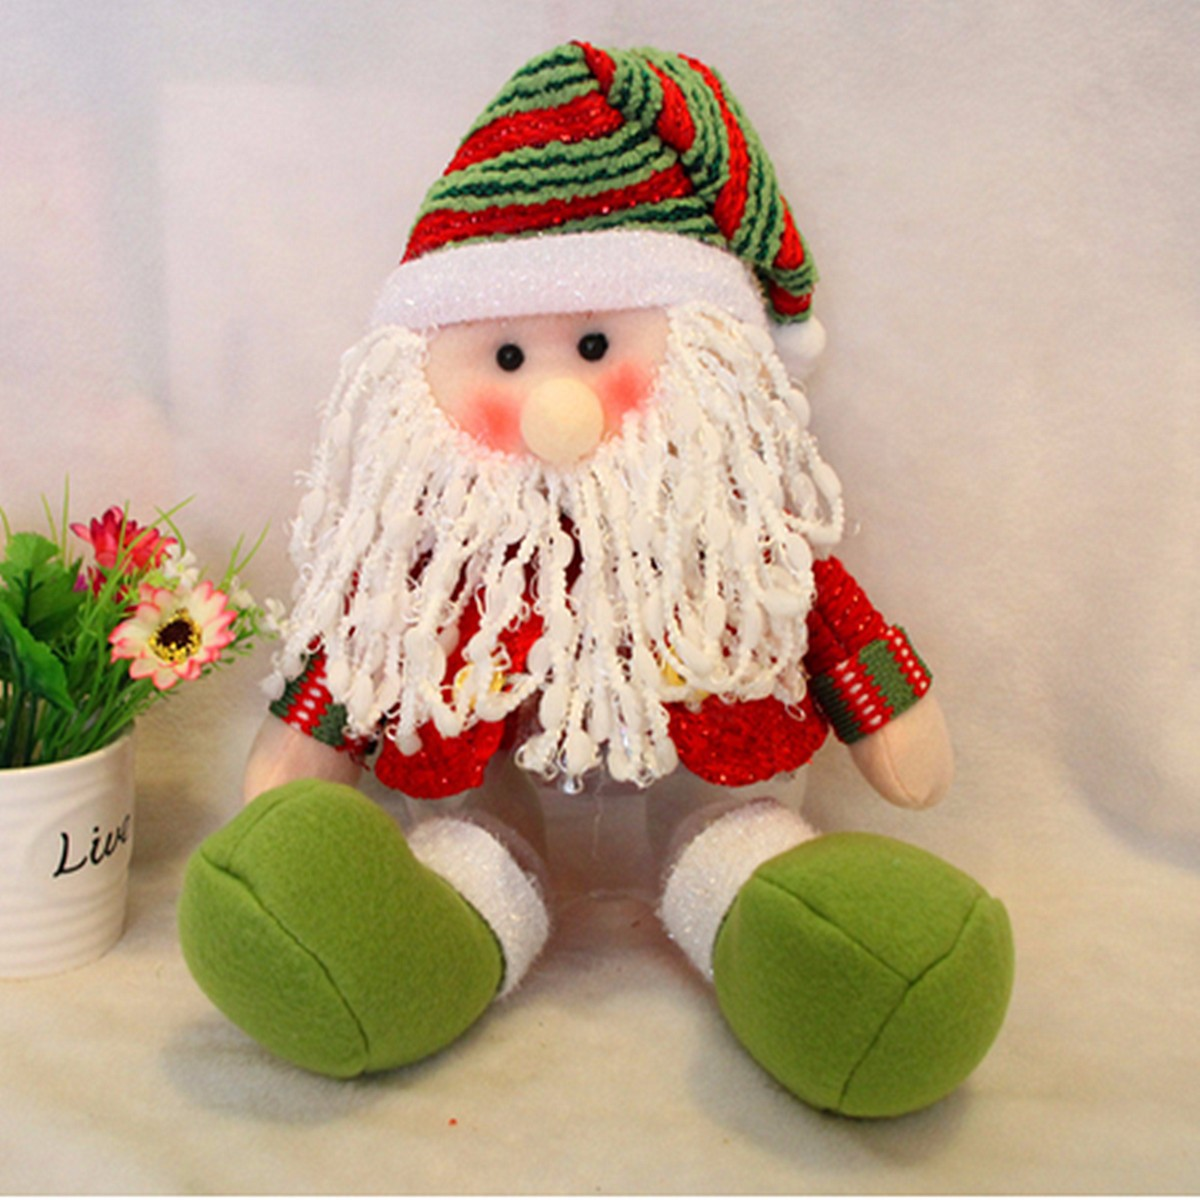 Lovely Snowman Santa Claus Candy Round Jar Bottle Christmas Kid Toy Doll Gift Decor - Photo: 6